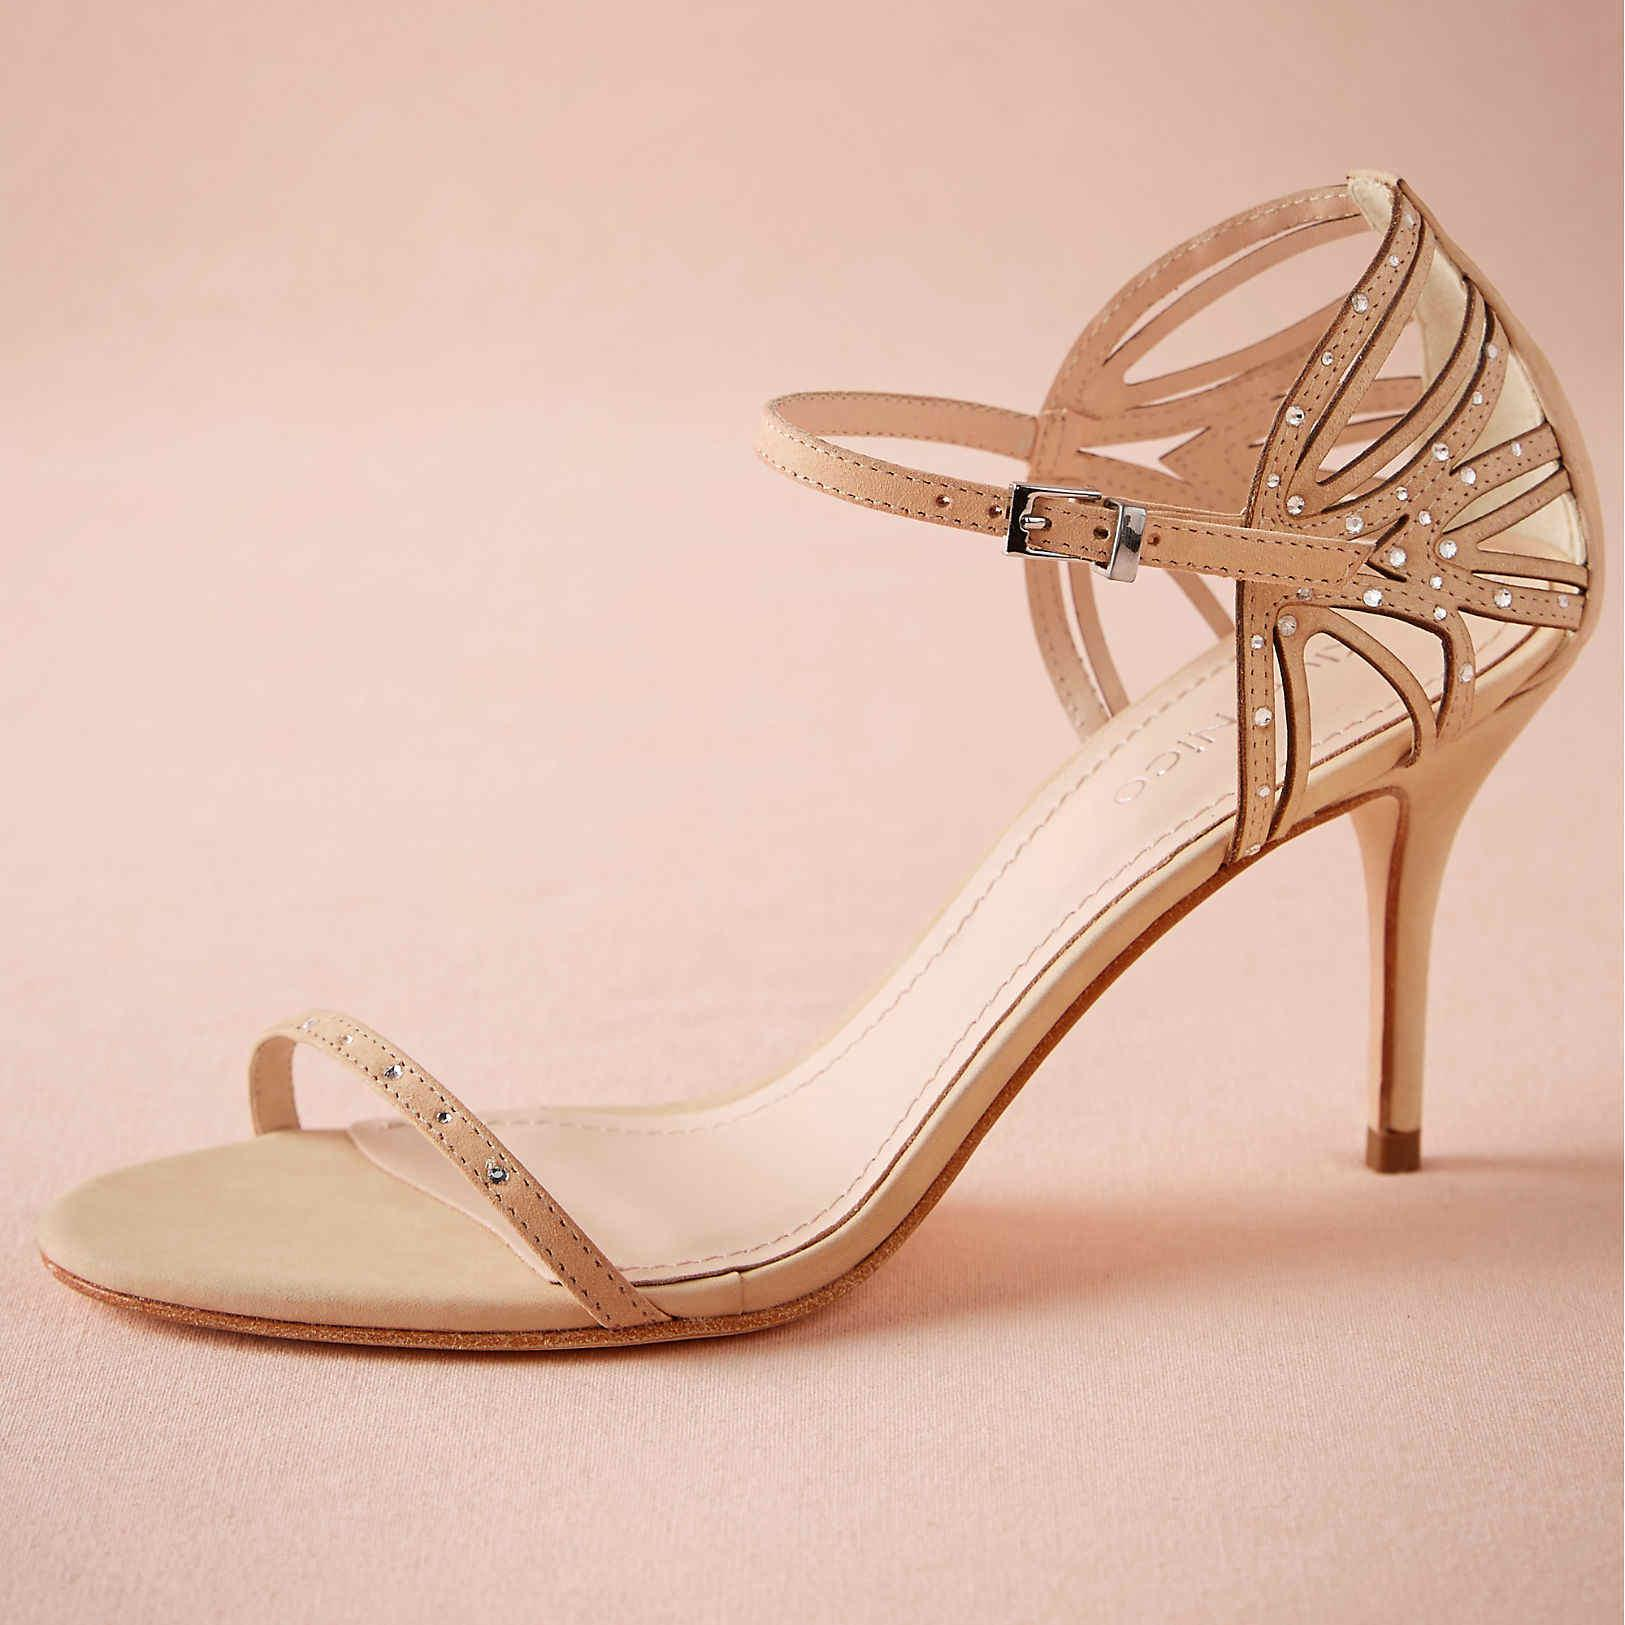 Blush Pink Wedding Shoes Sandal Open Toe 2015 Women Pumps Wedding ...